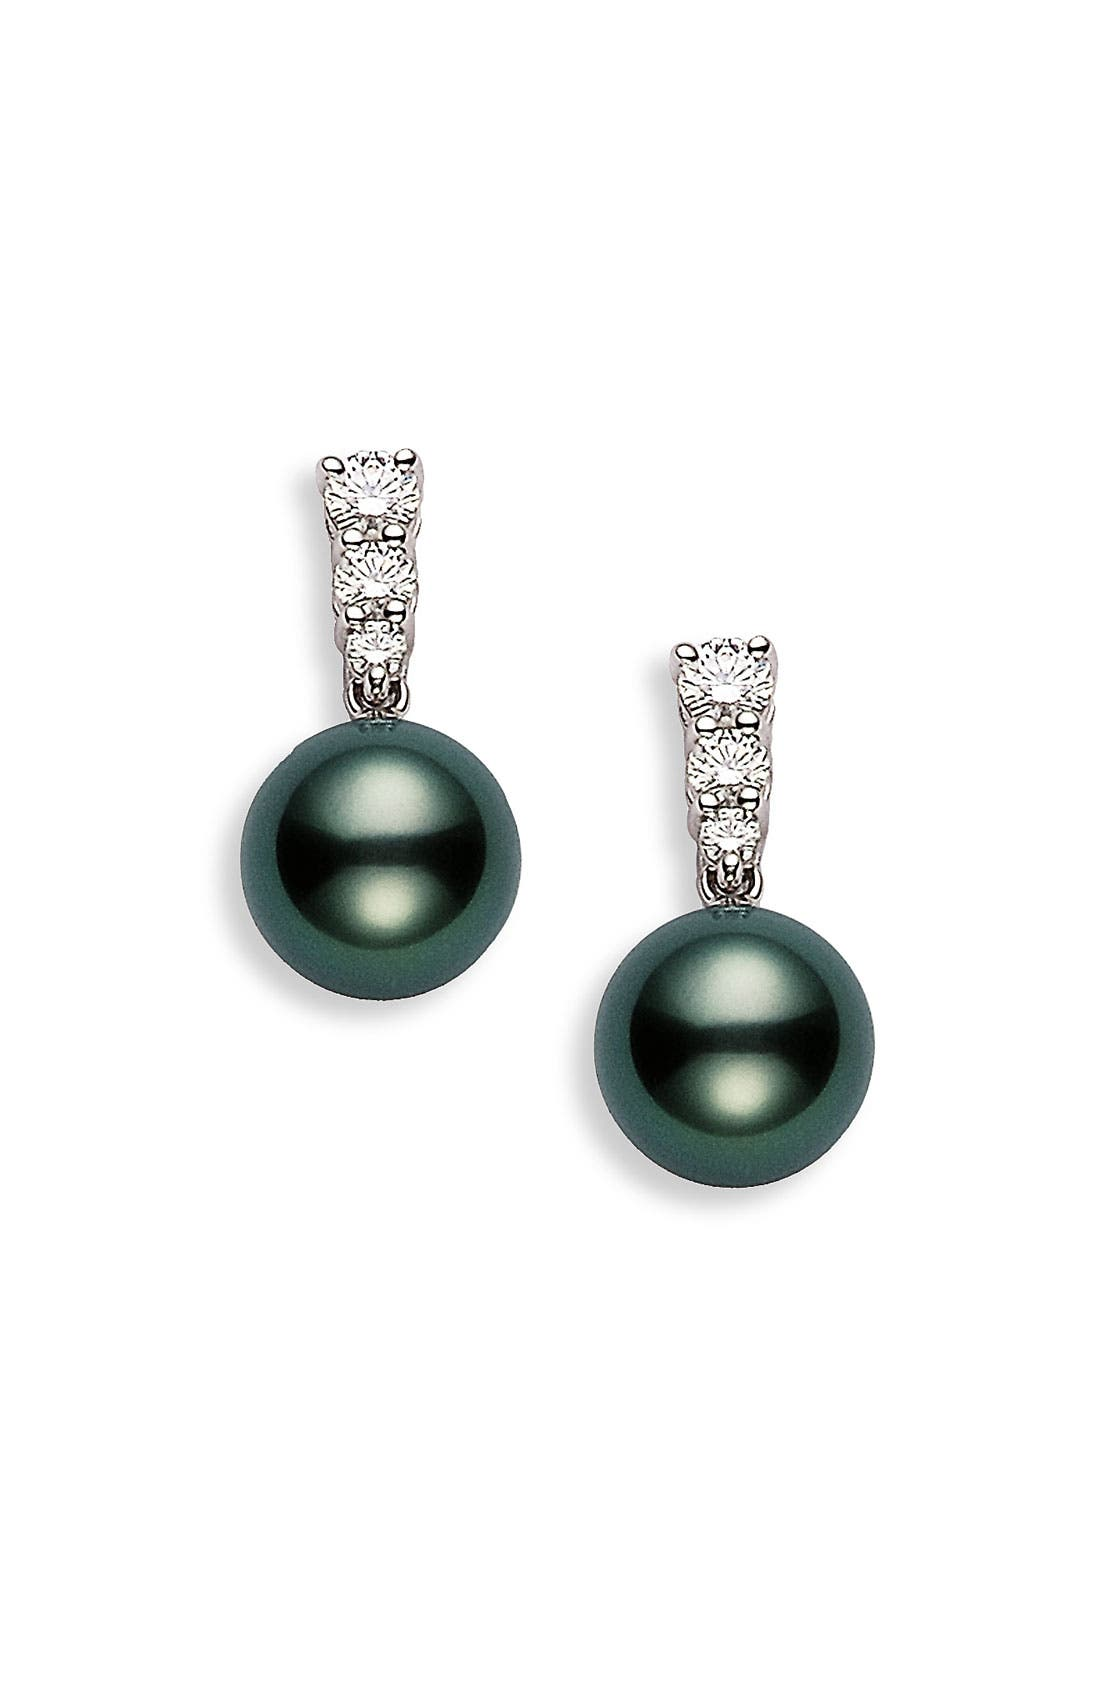 MIKIMOTO 'Morning Dew' Black South Sea Cultured Pearl